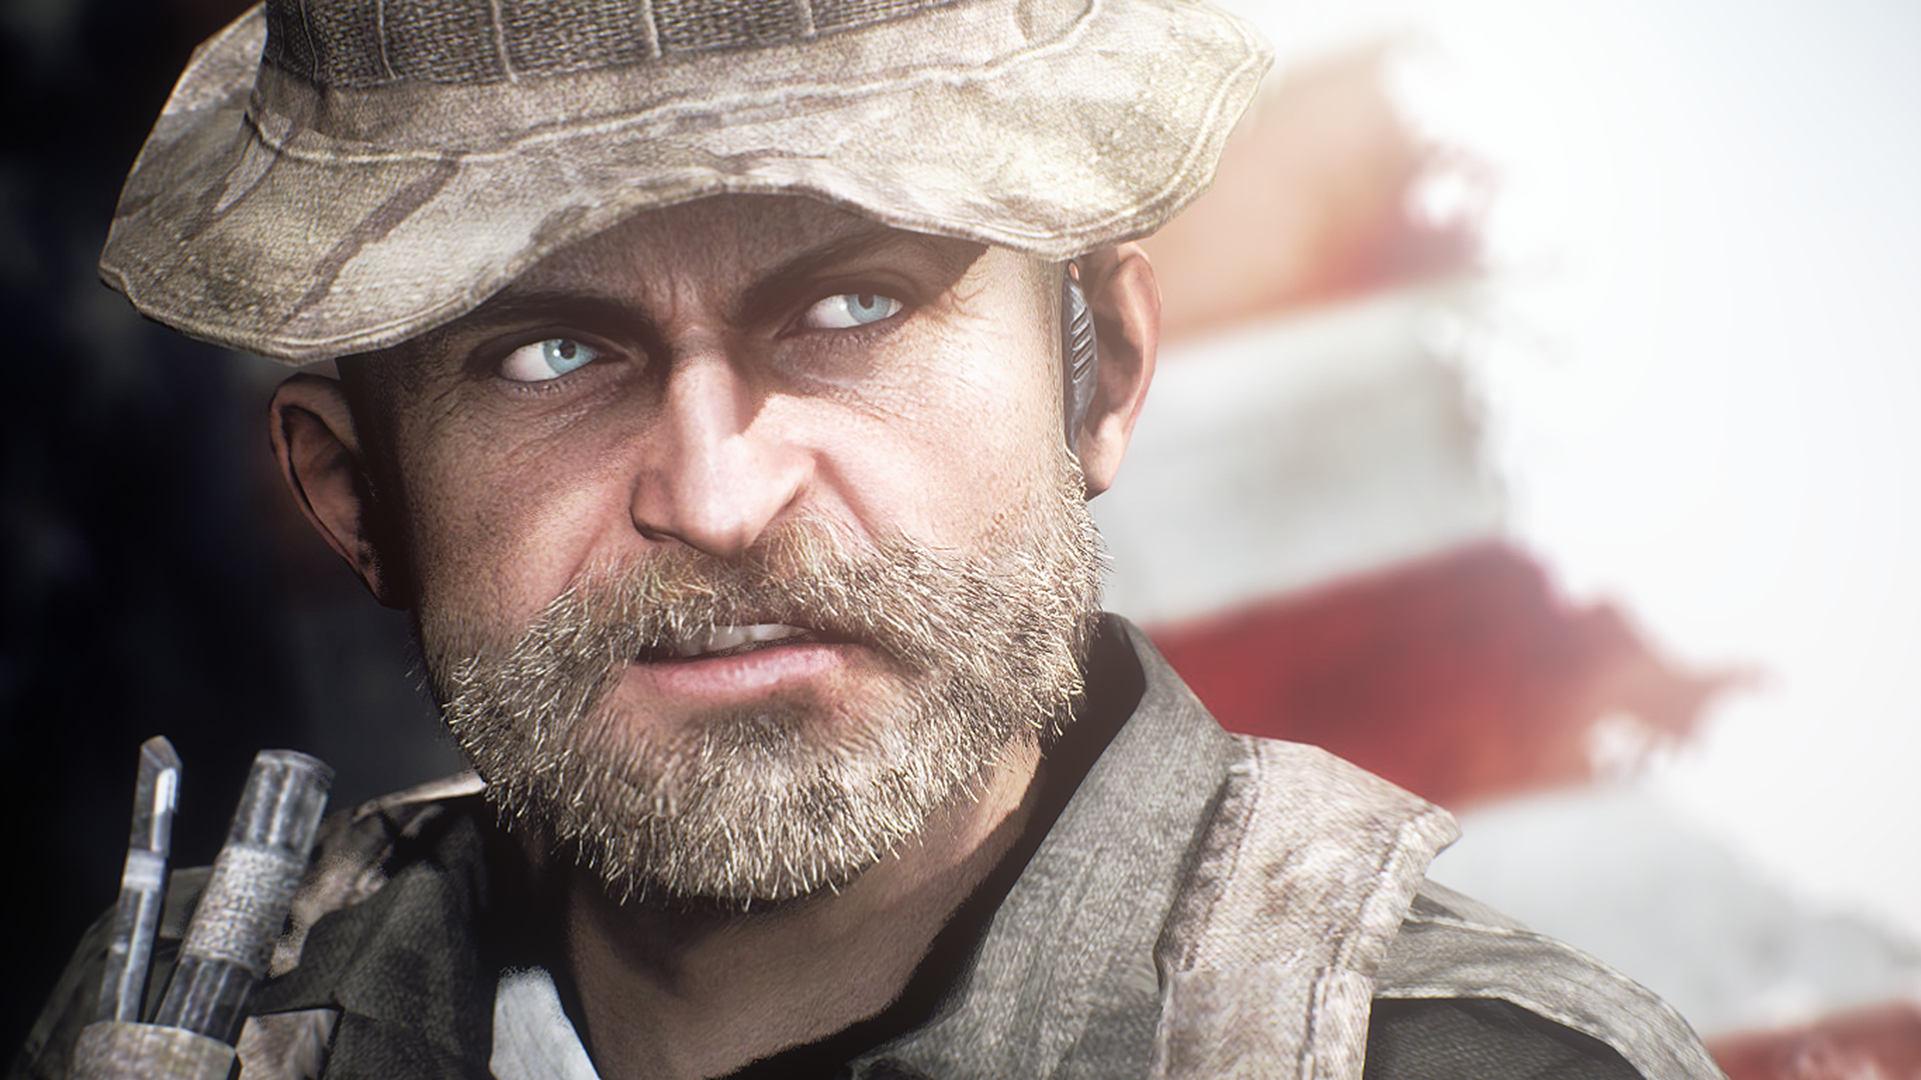 Captain Price | Captain Price | Xbox one games, Call of duty, Modern